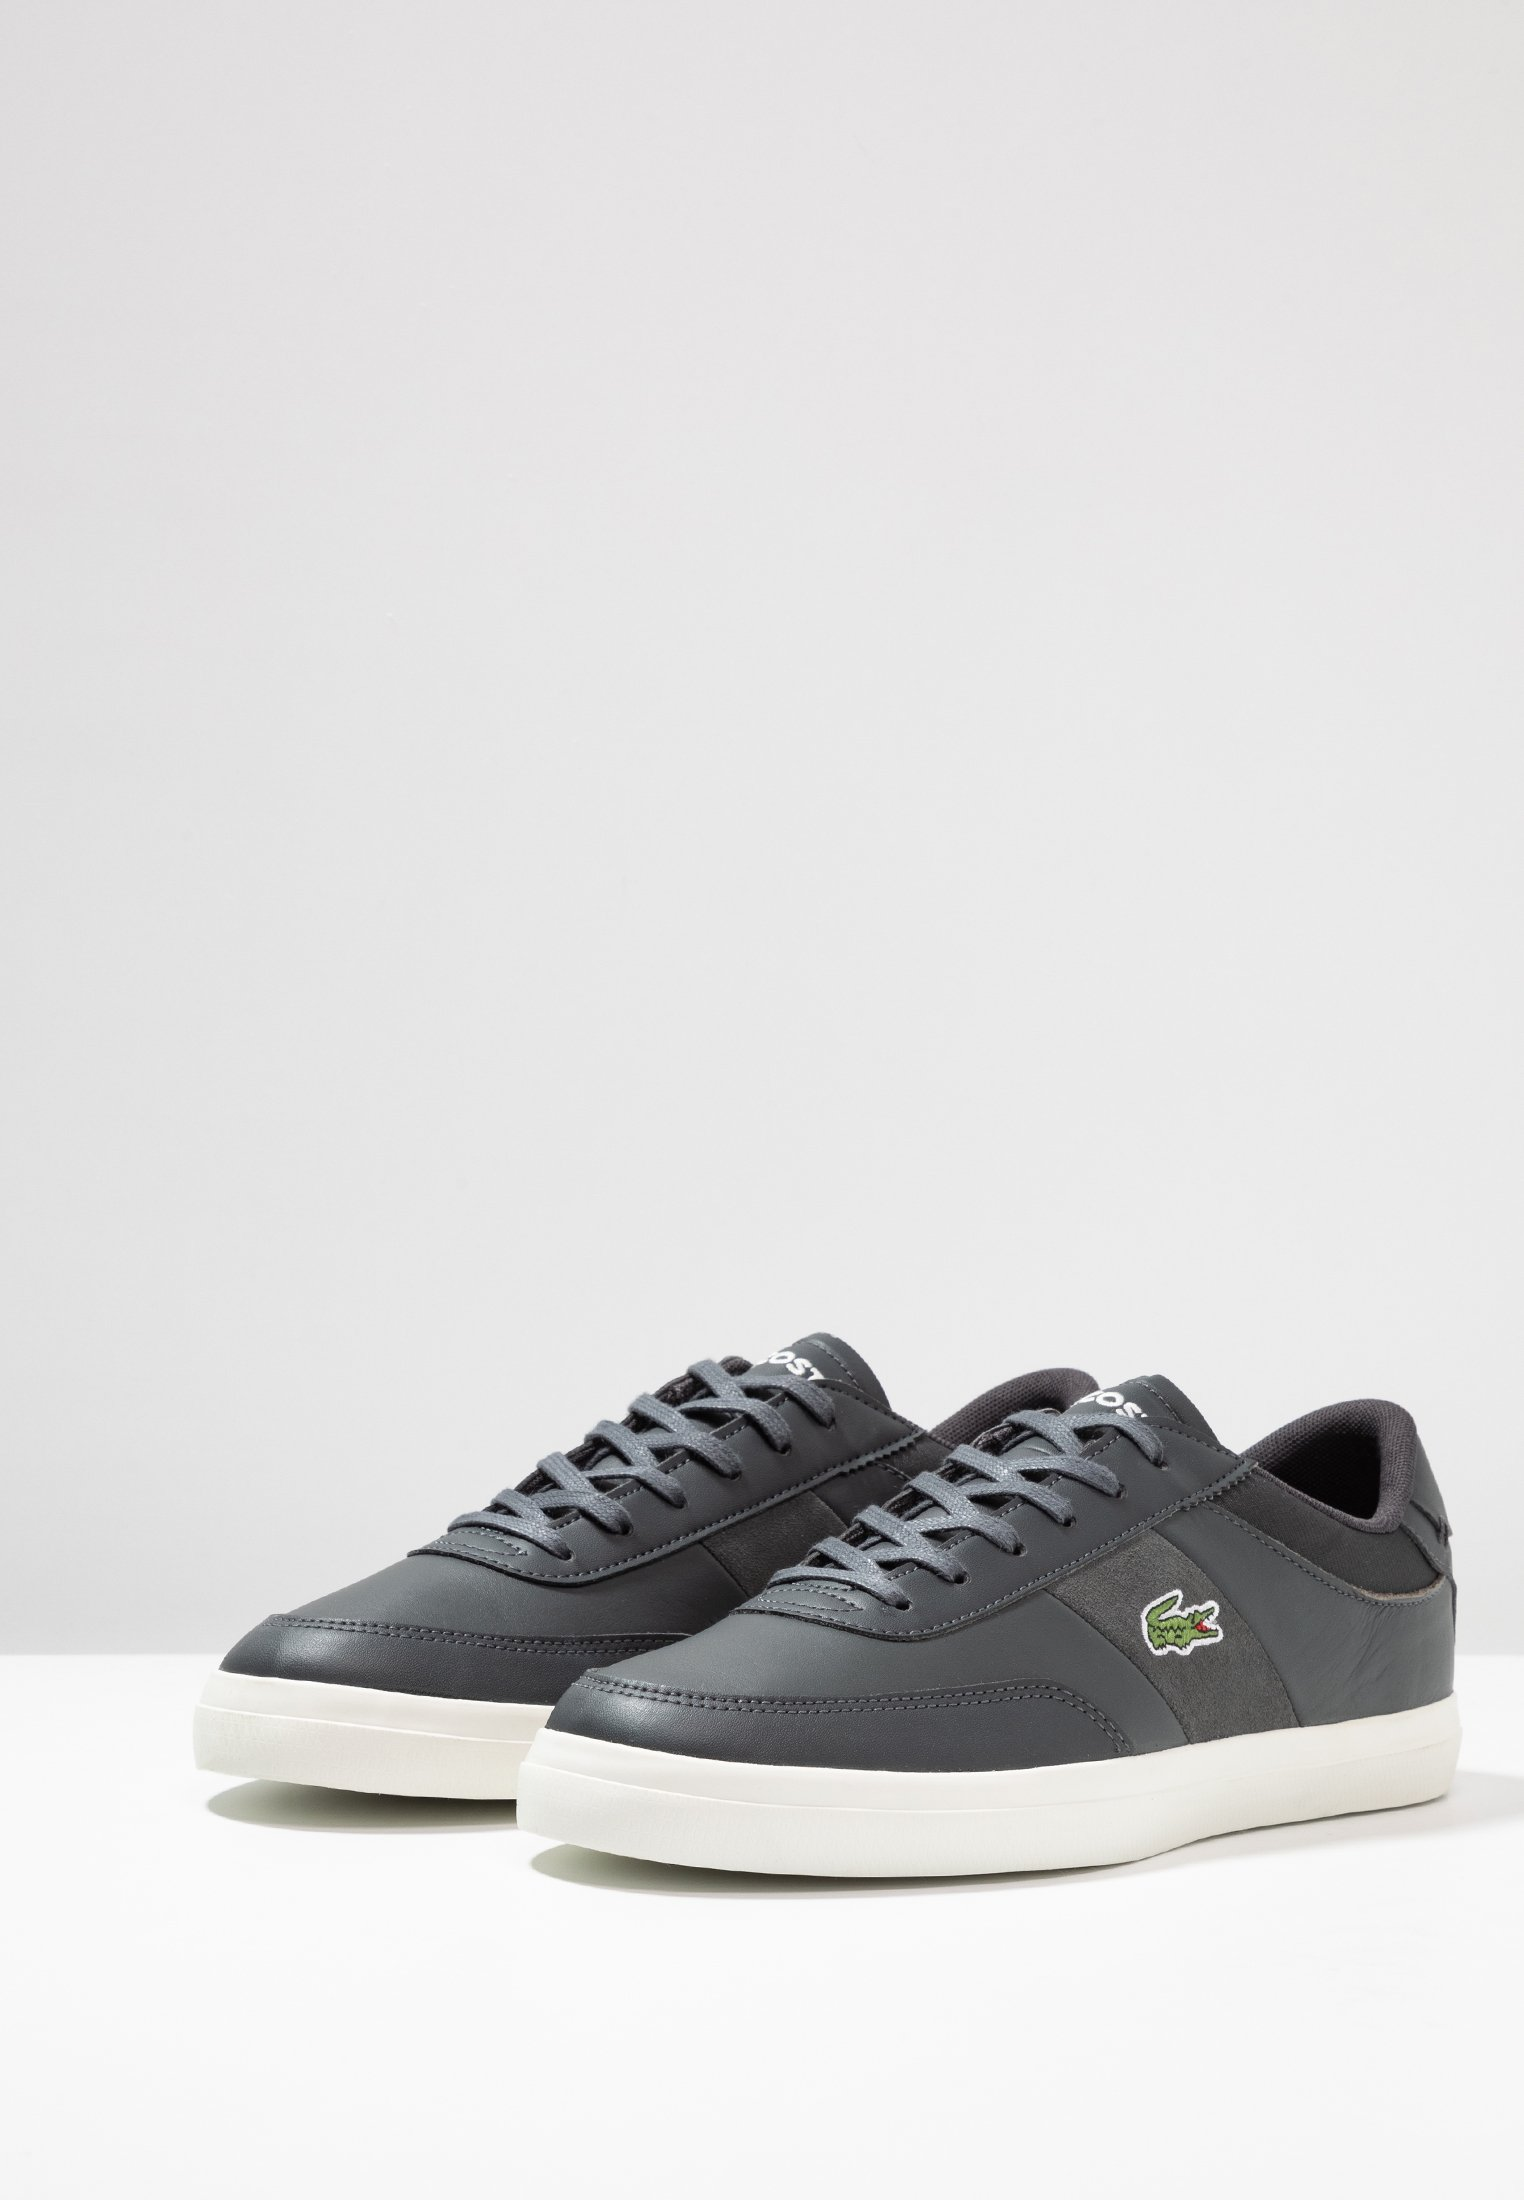 masterBaskets Lacoste Dark Court Basses Gry offwhite TcKlF1J